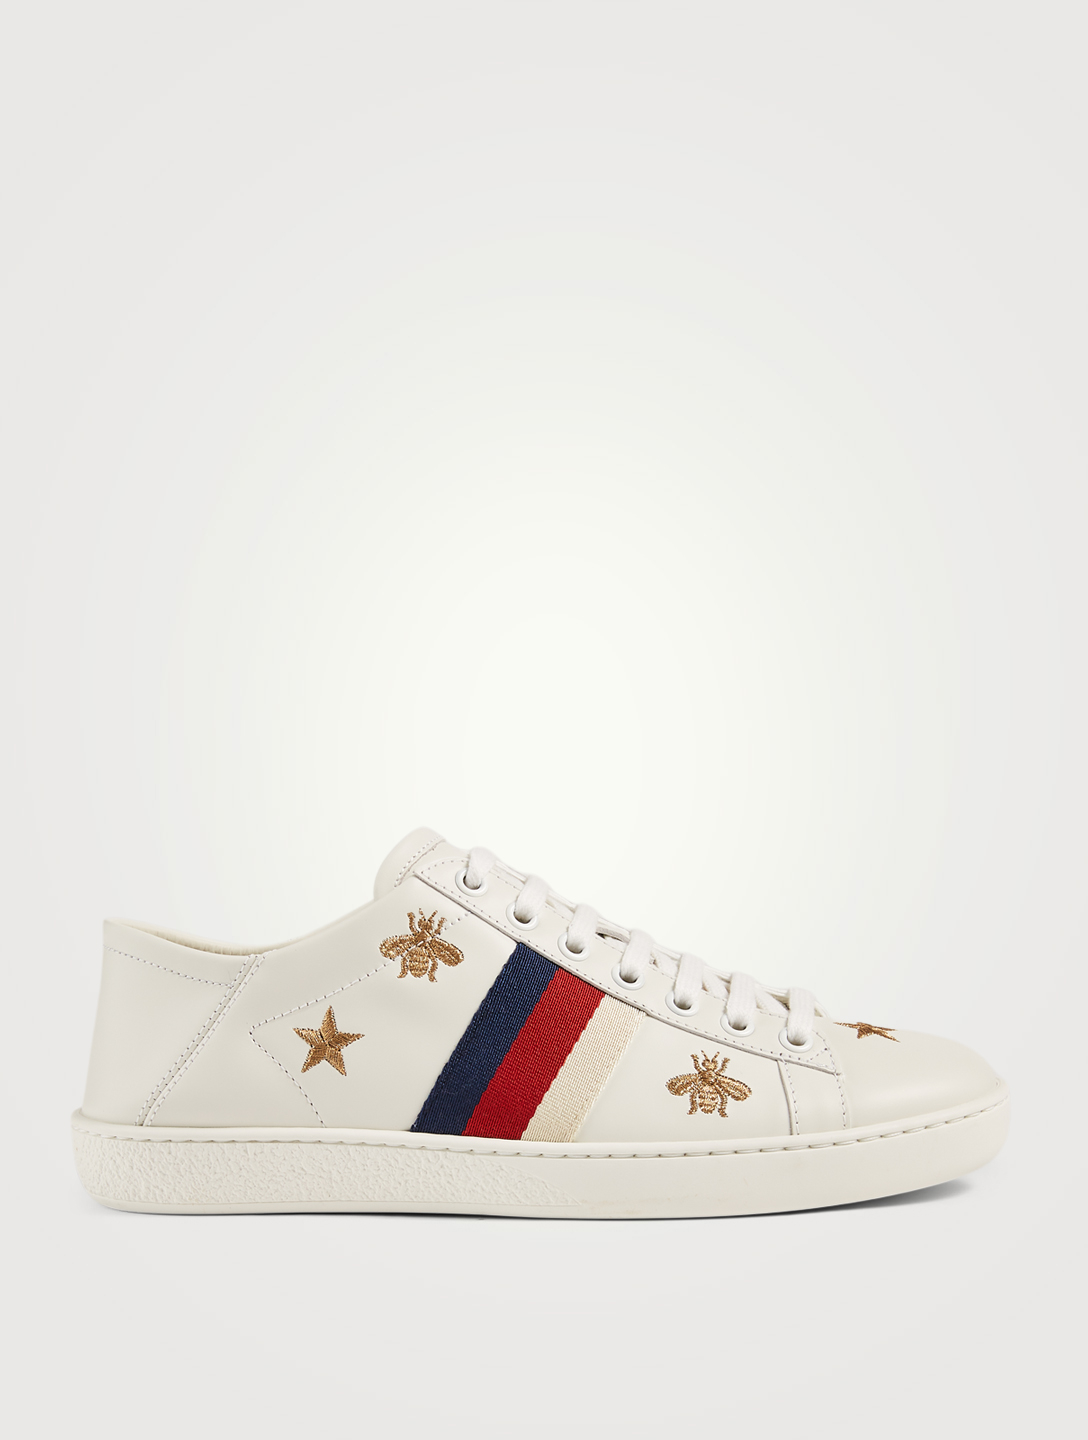 GUCCI Ace Embroidered Leather Sneakers Women's White